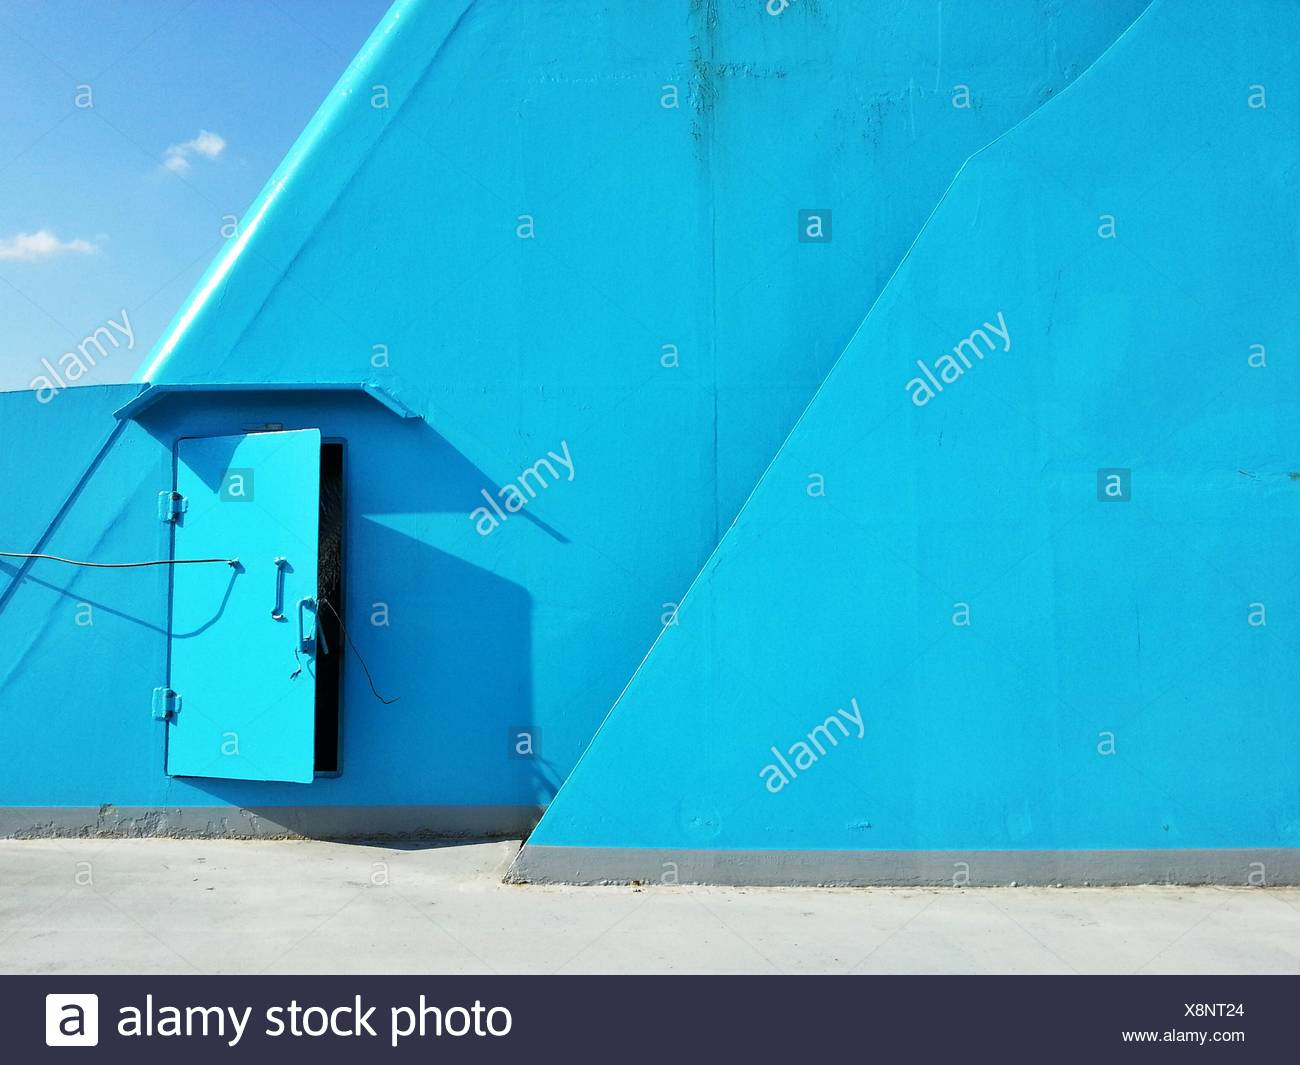 Blue deck aboard ship - Stock Image